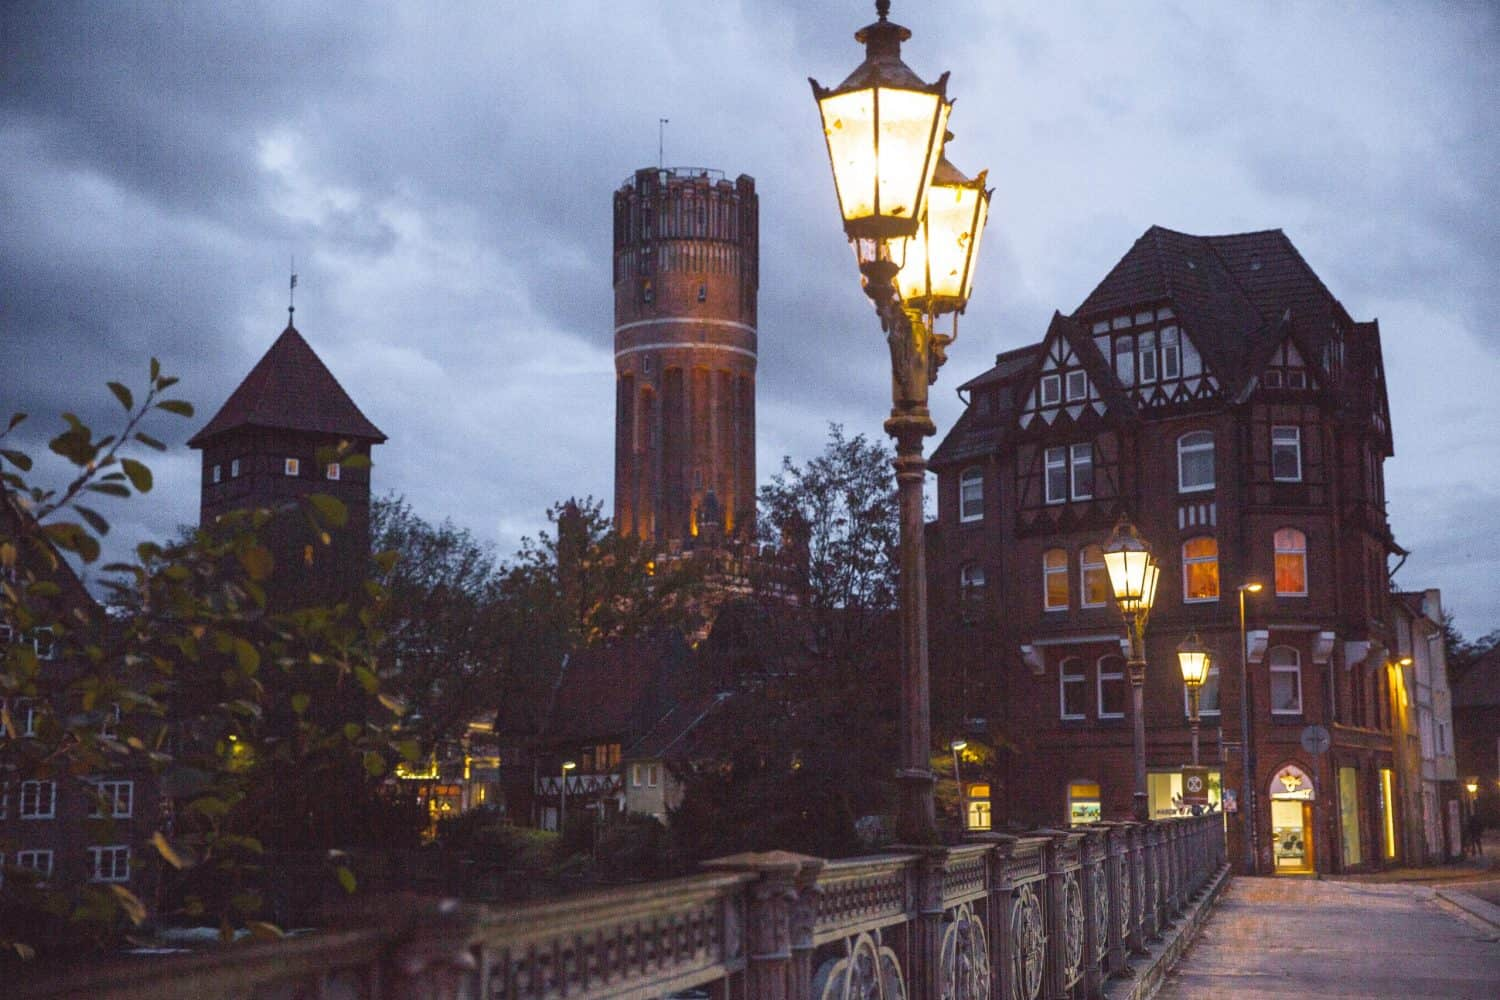 Lüneburg makes a great day trip from Hamburg, Germany! The Water Tower is a great place to go to get a beautiful view of the city - the water tower is the highest building in this photo.